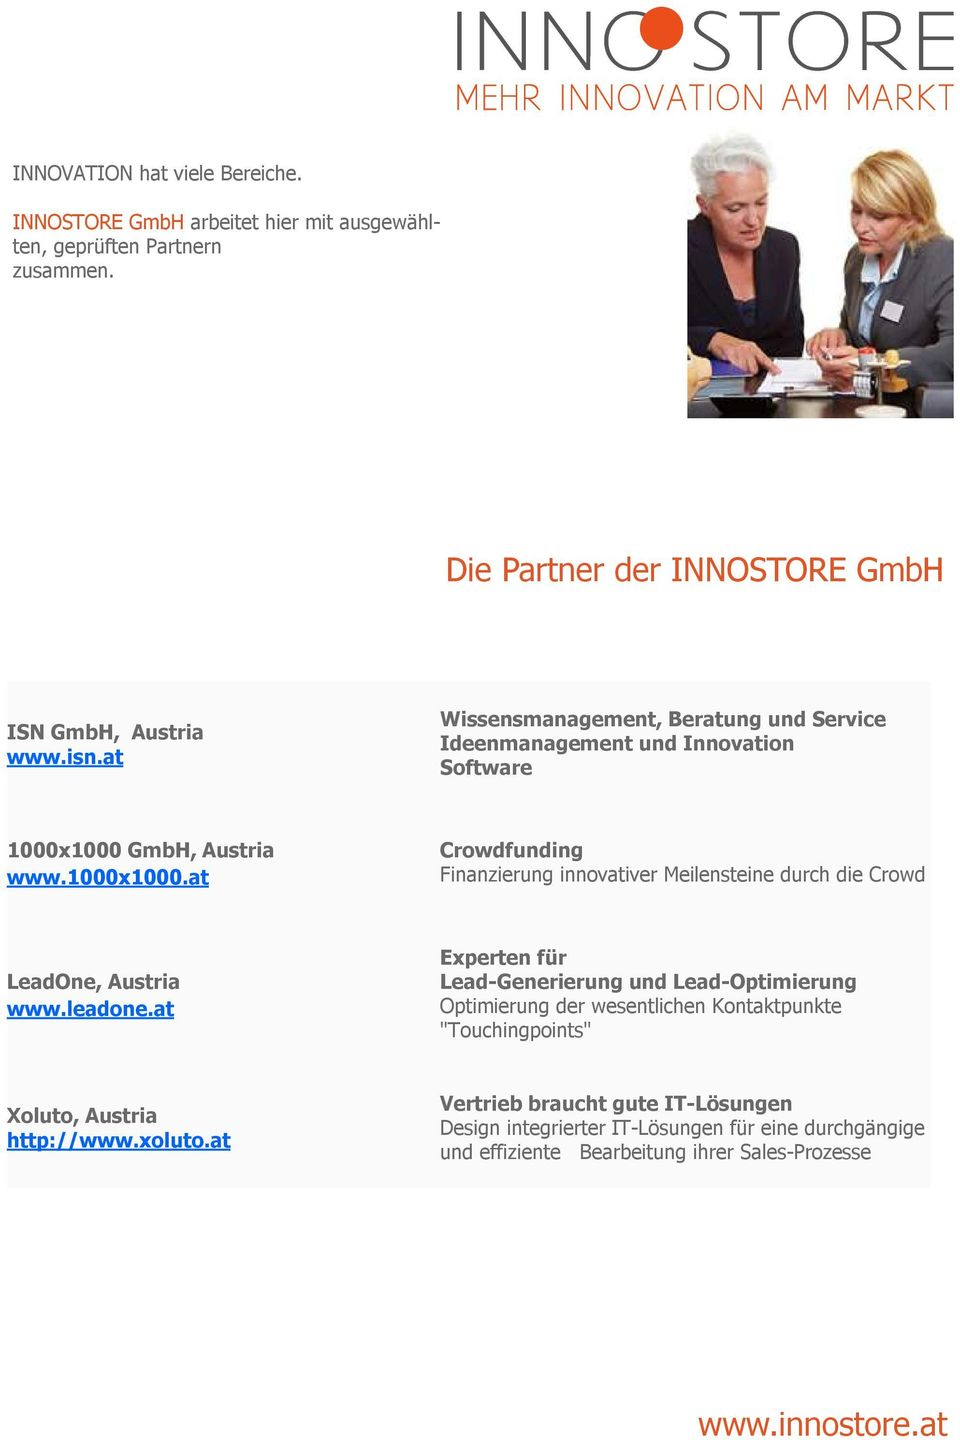 GmbH, Austria www.1000x1000.at Crowdfunding Finanzierung innovativer Meilensteine durch die Crowd LeadOne, Austria www.leadone.